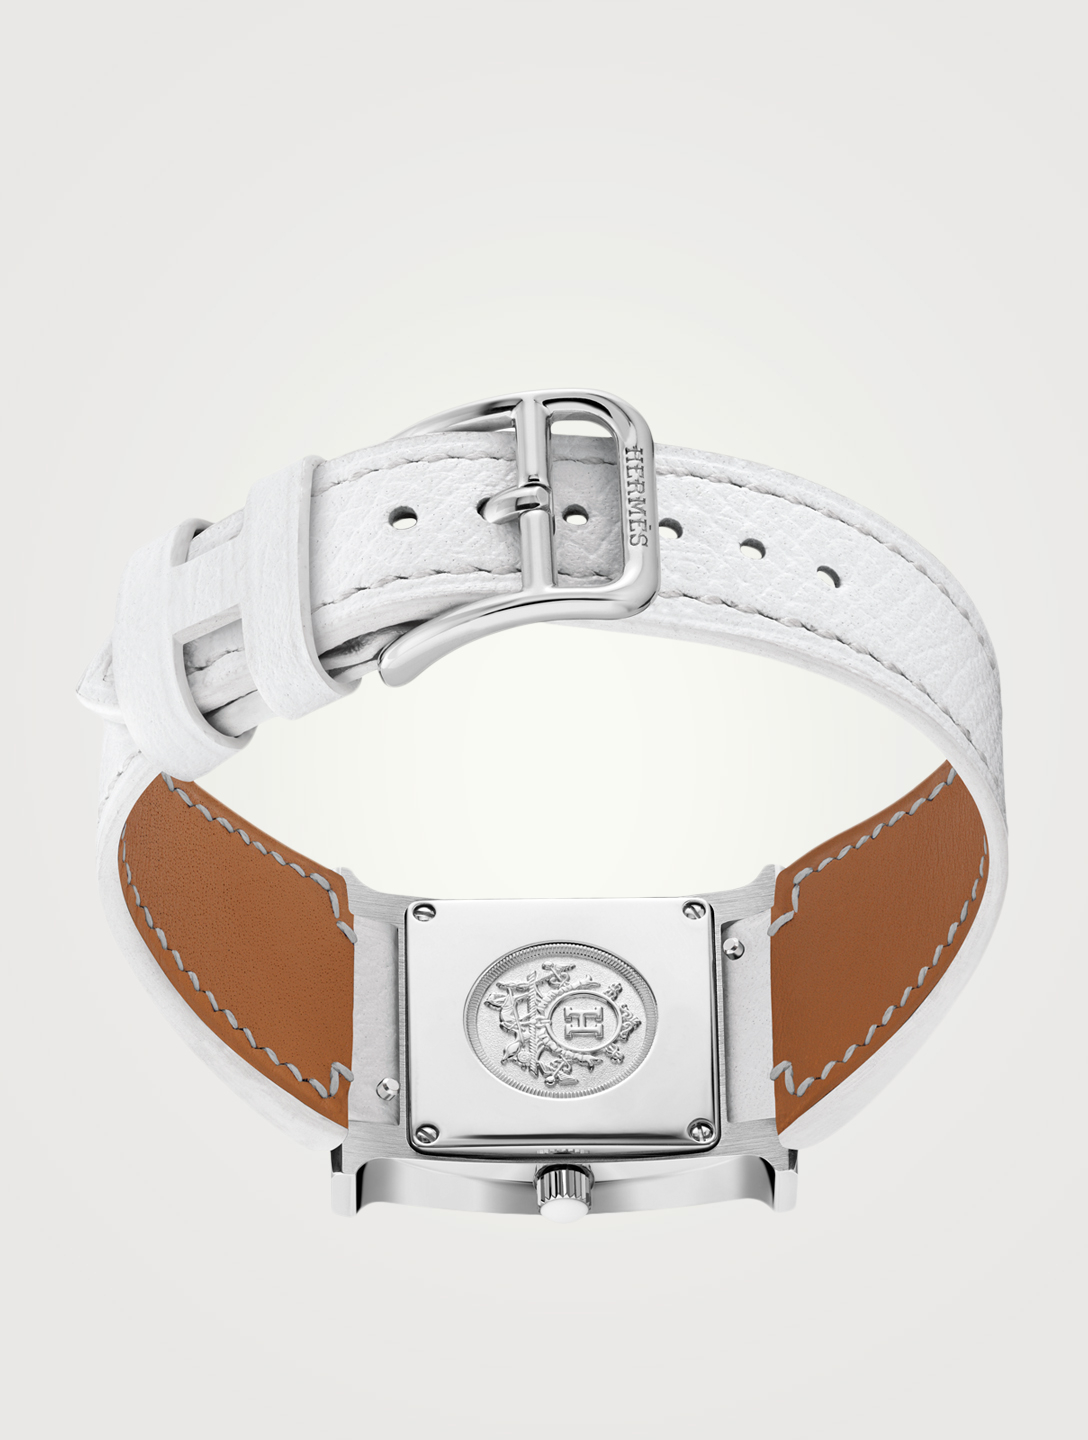 HERMÈS Small Heure H Stainless Steel Leather Strap Watch With Diamonds Women's White